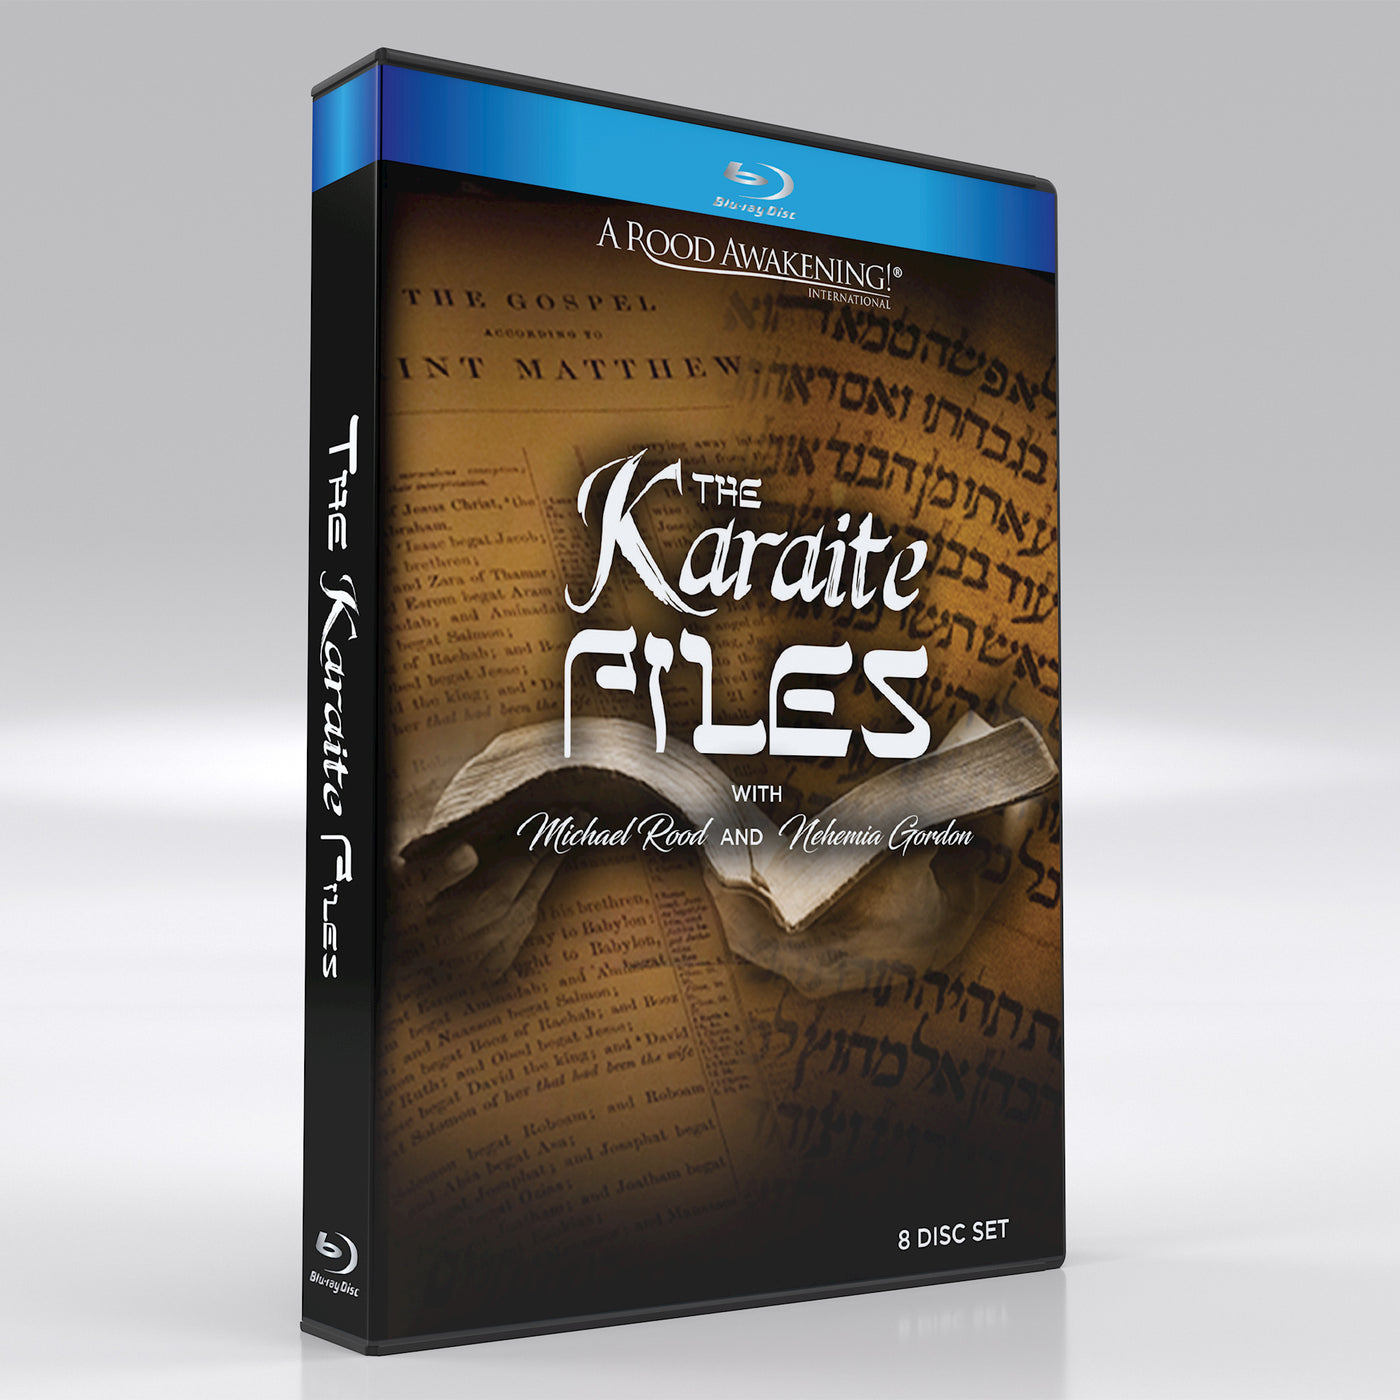 The Karaite Files